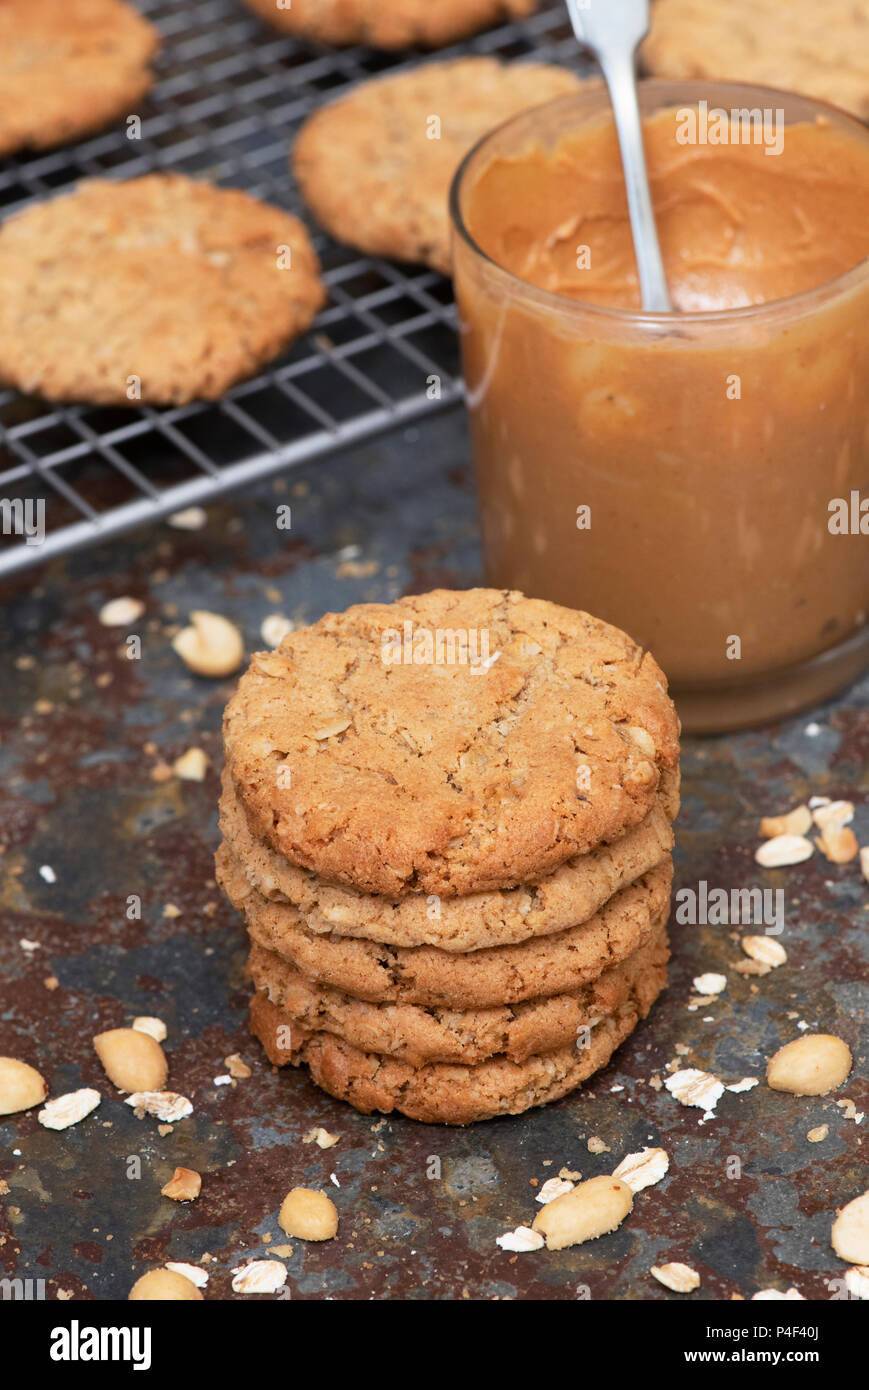 Homemade Peanut Butter Cookies - Stock Image